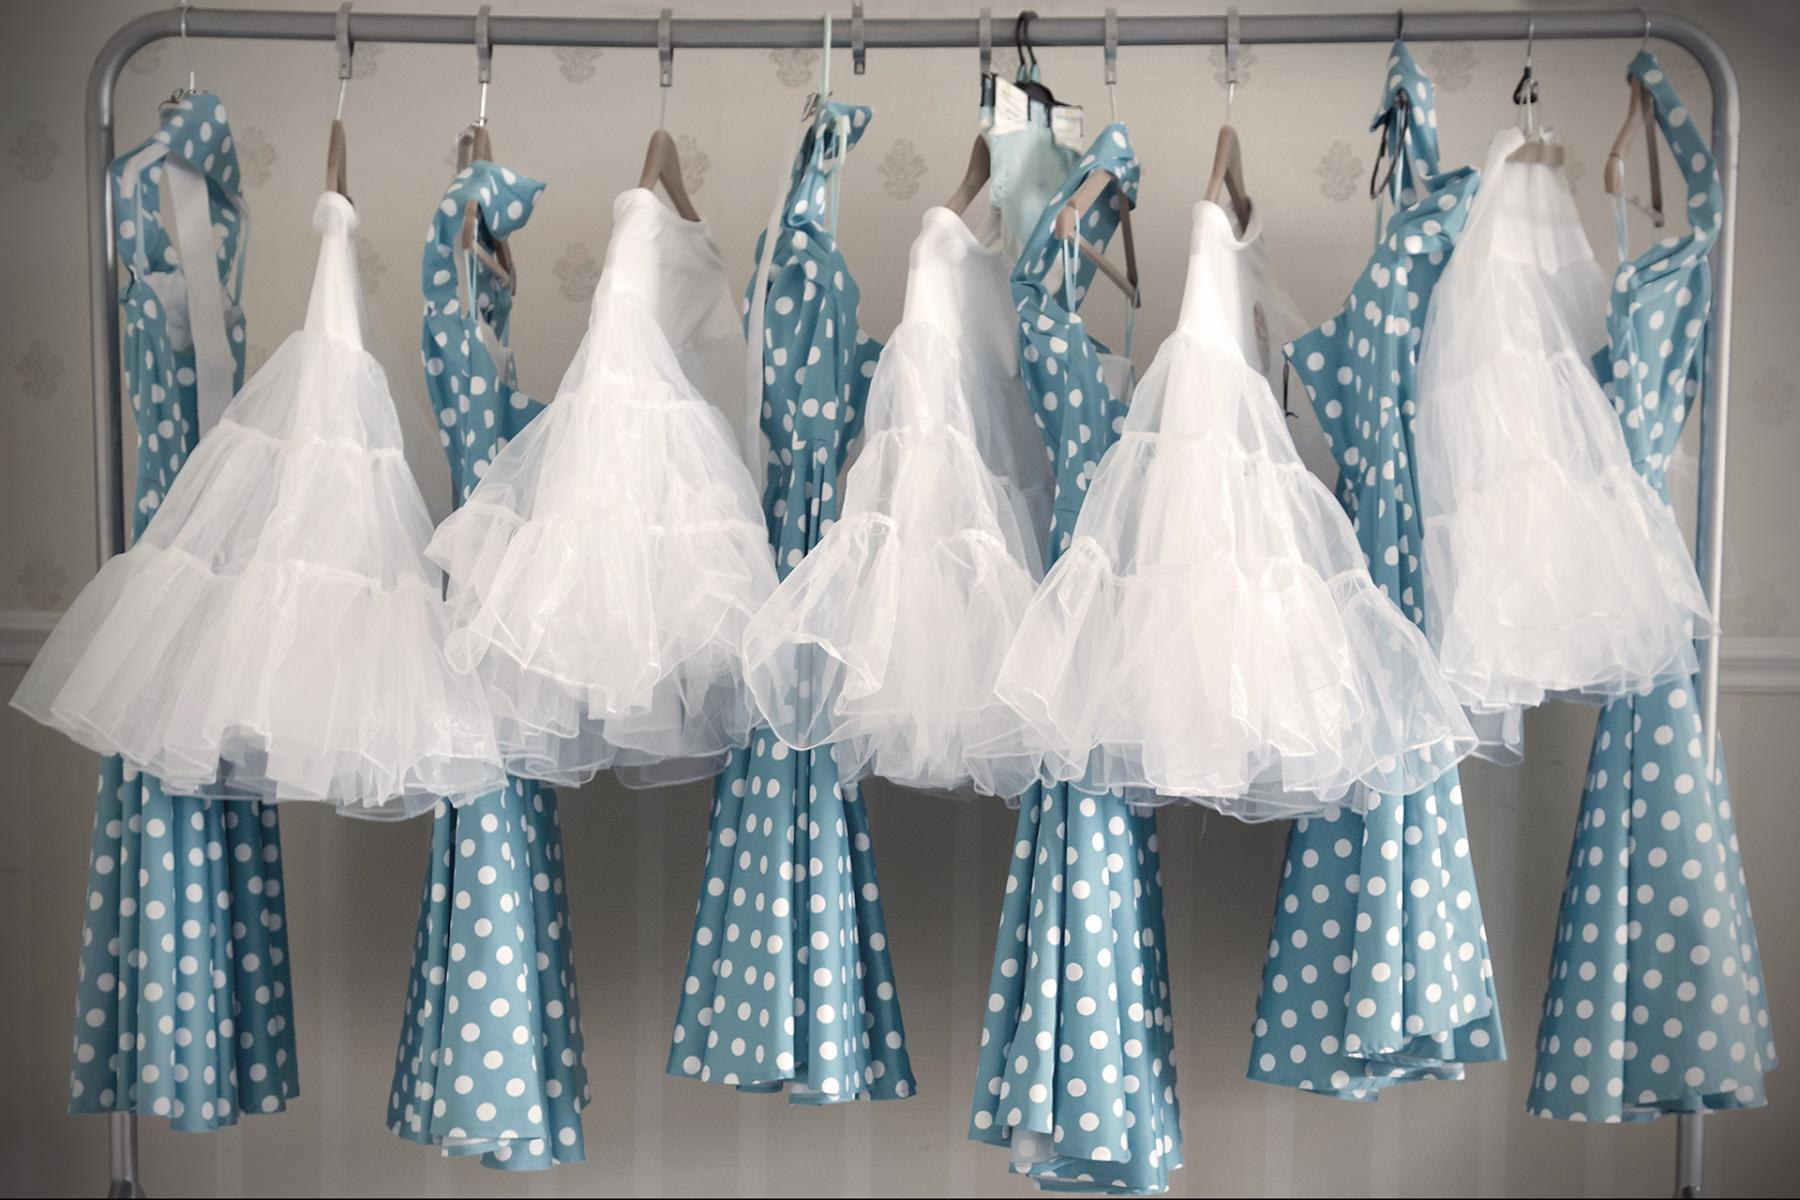 Buckland-hall-wedding-photographer-bridesmaids-dresses-polka-dot-wedding-photographers-south-wales